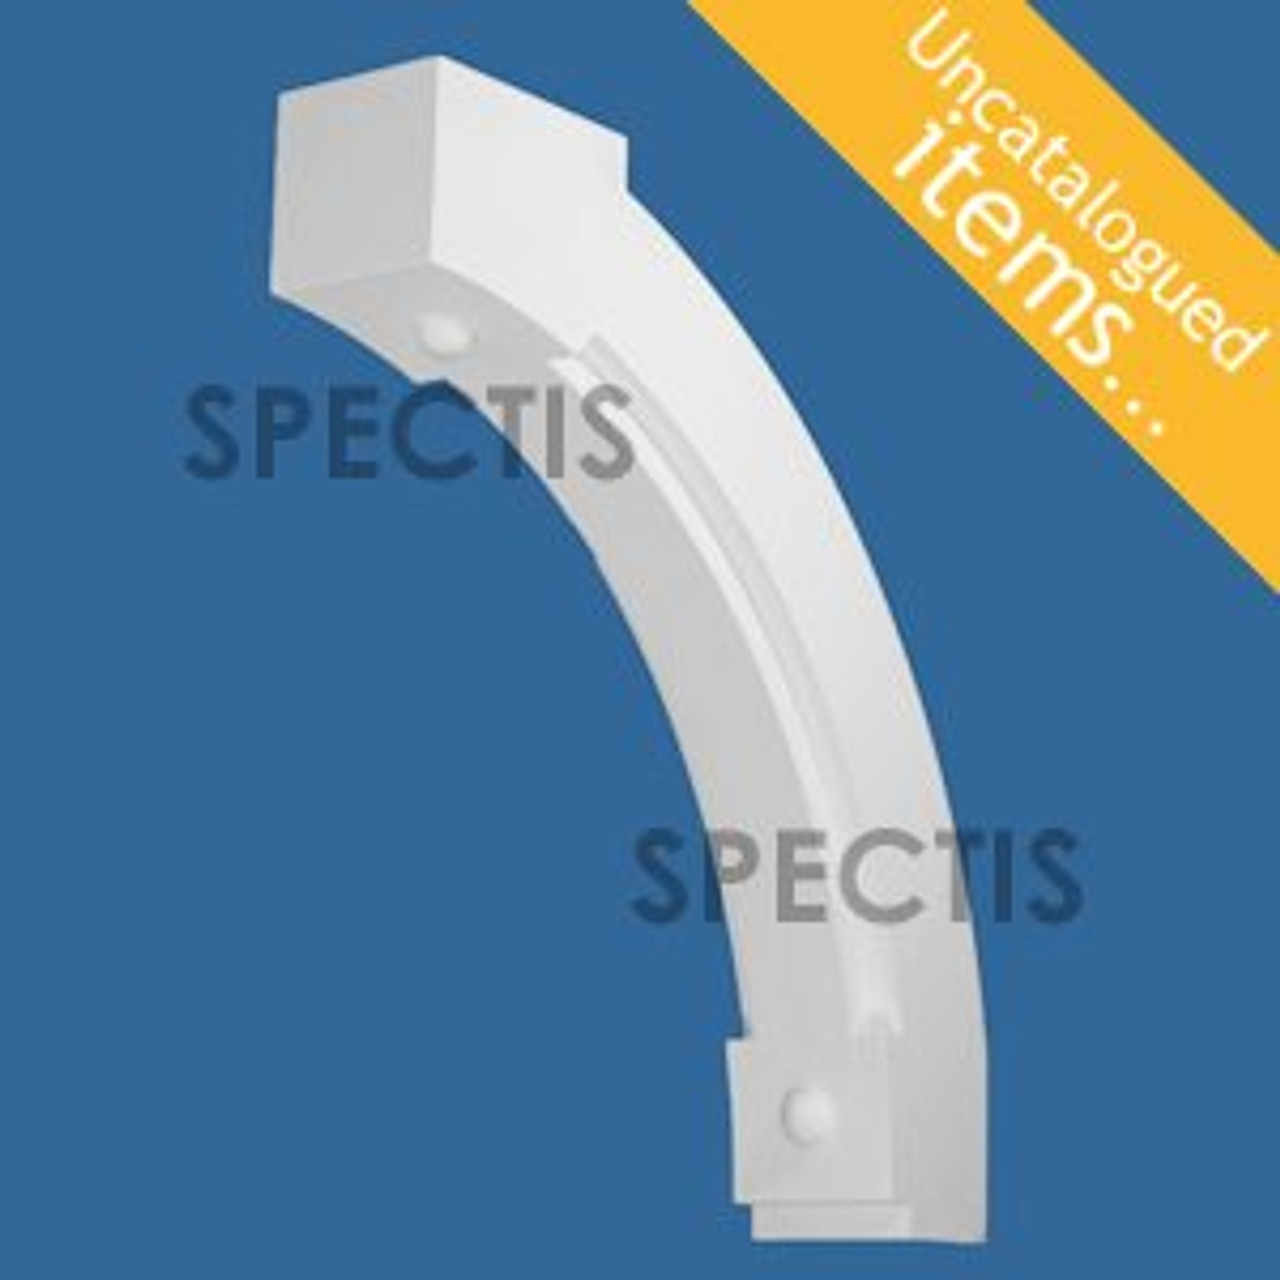 """BL3009 Spectis Eave Block or Bracket 5.5""""W x 29""""H x 26.75"""" Projection"""